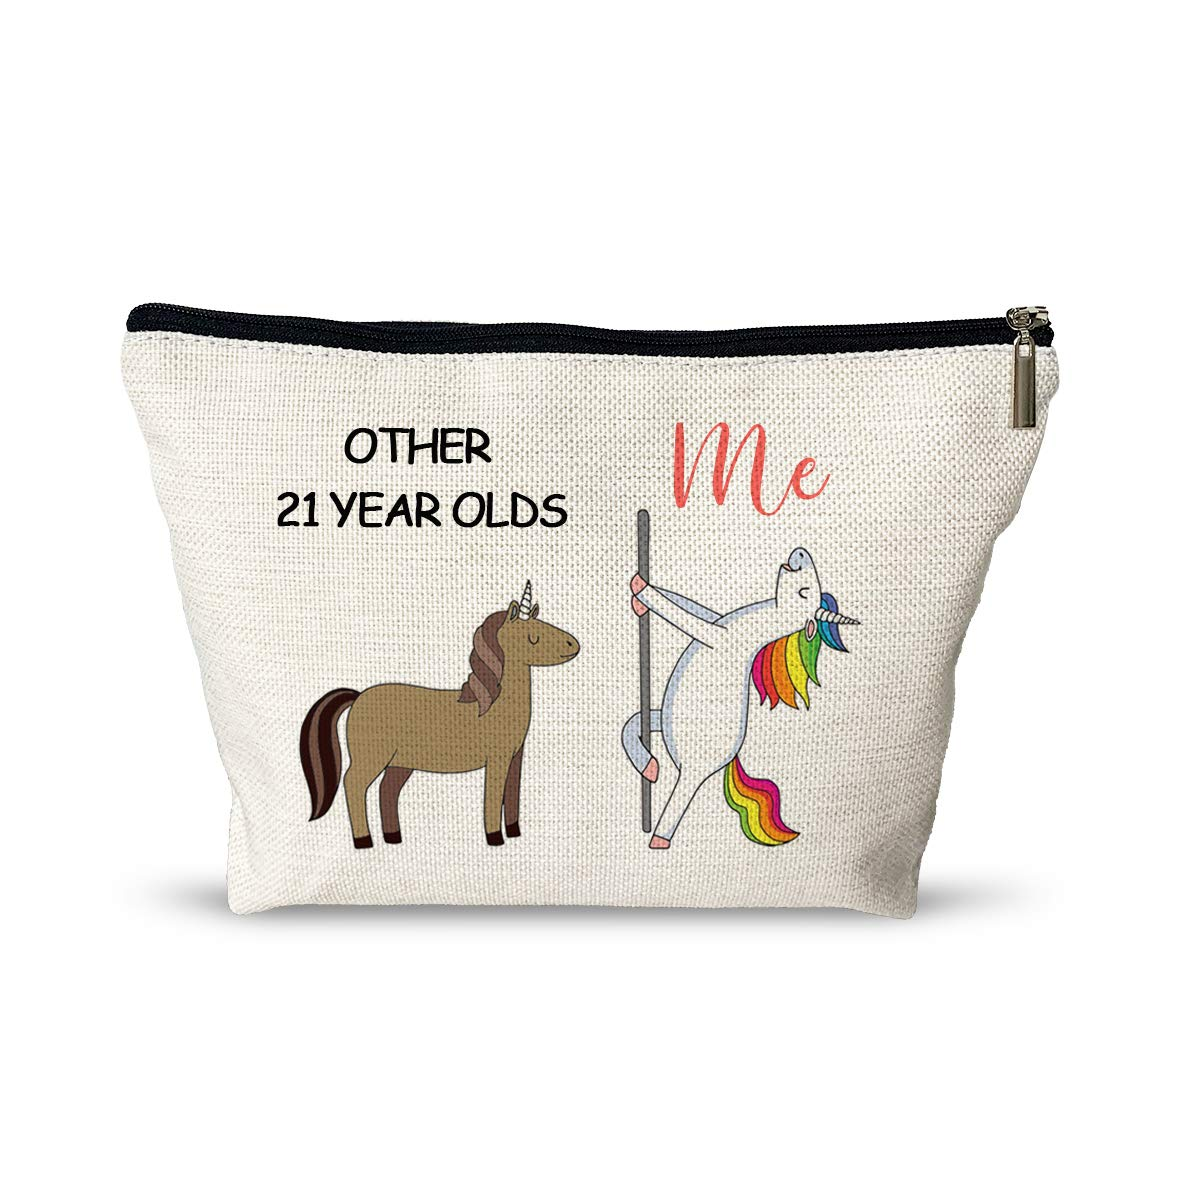 21st Birthday Gifts for Women Cosmetic Bags - Funny 0ther 21 Year Olds Makeup Bag - Retirement/Commemorative/Christmas Gifts Makeup Travel Case for Her, Friend, Mom, Sister, Wife, Coworker